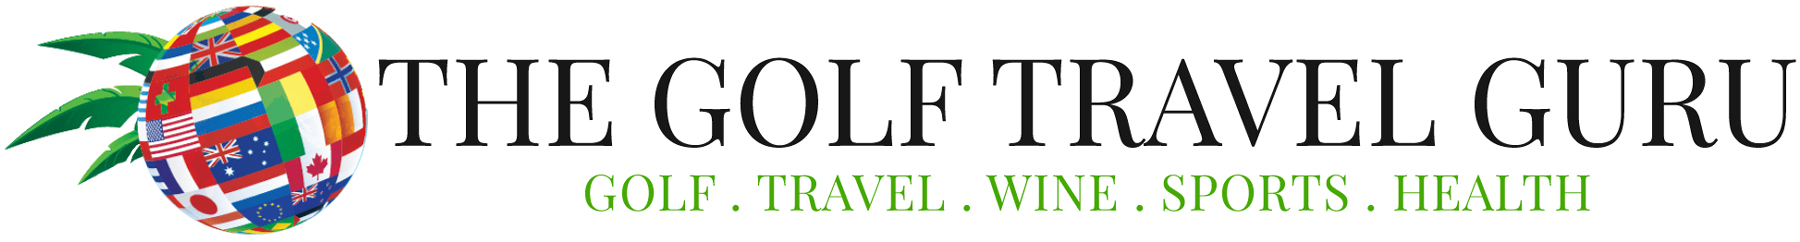 The Golf Travel Guru